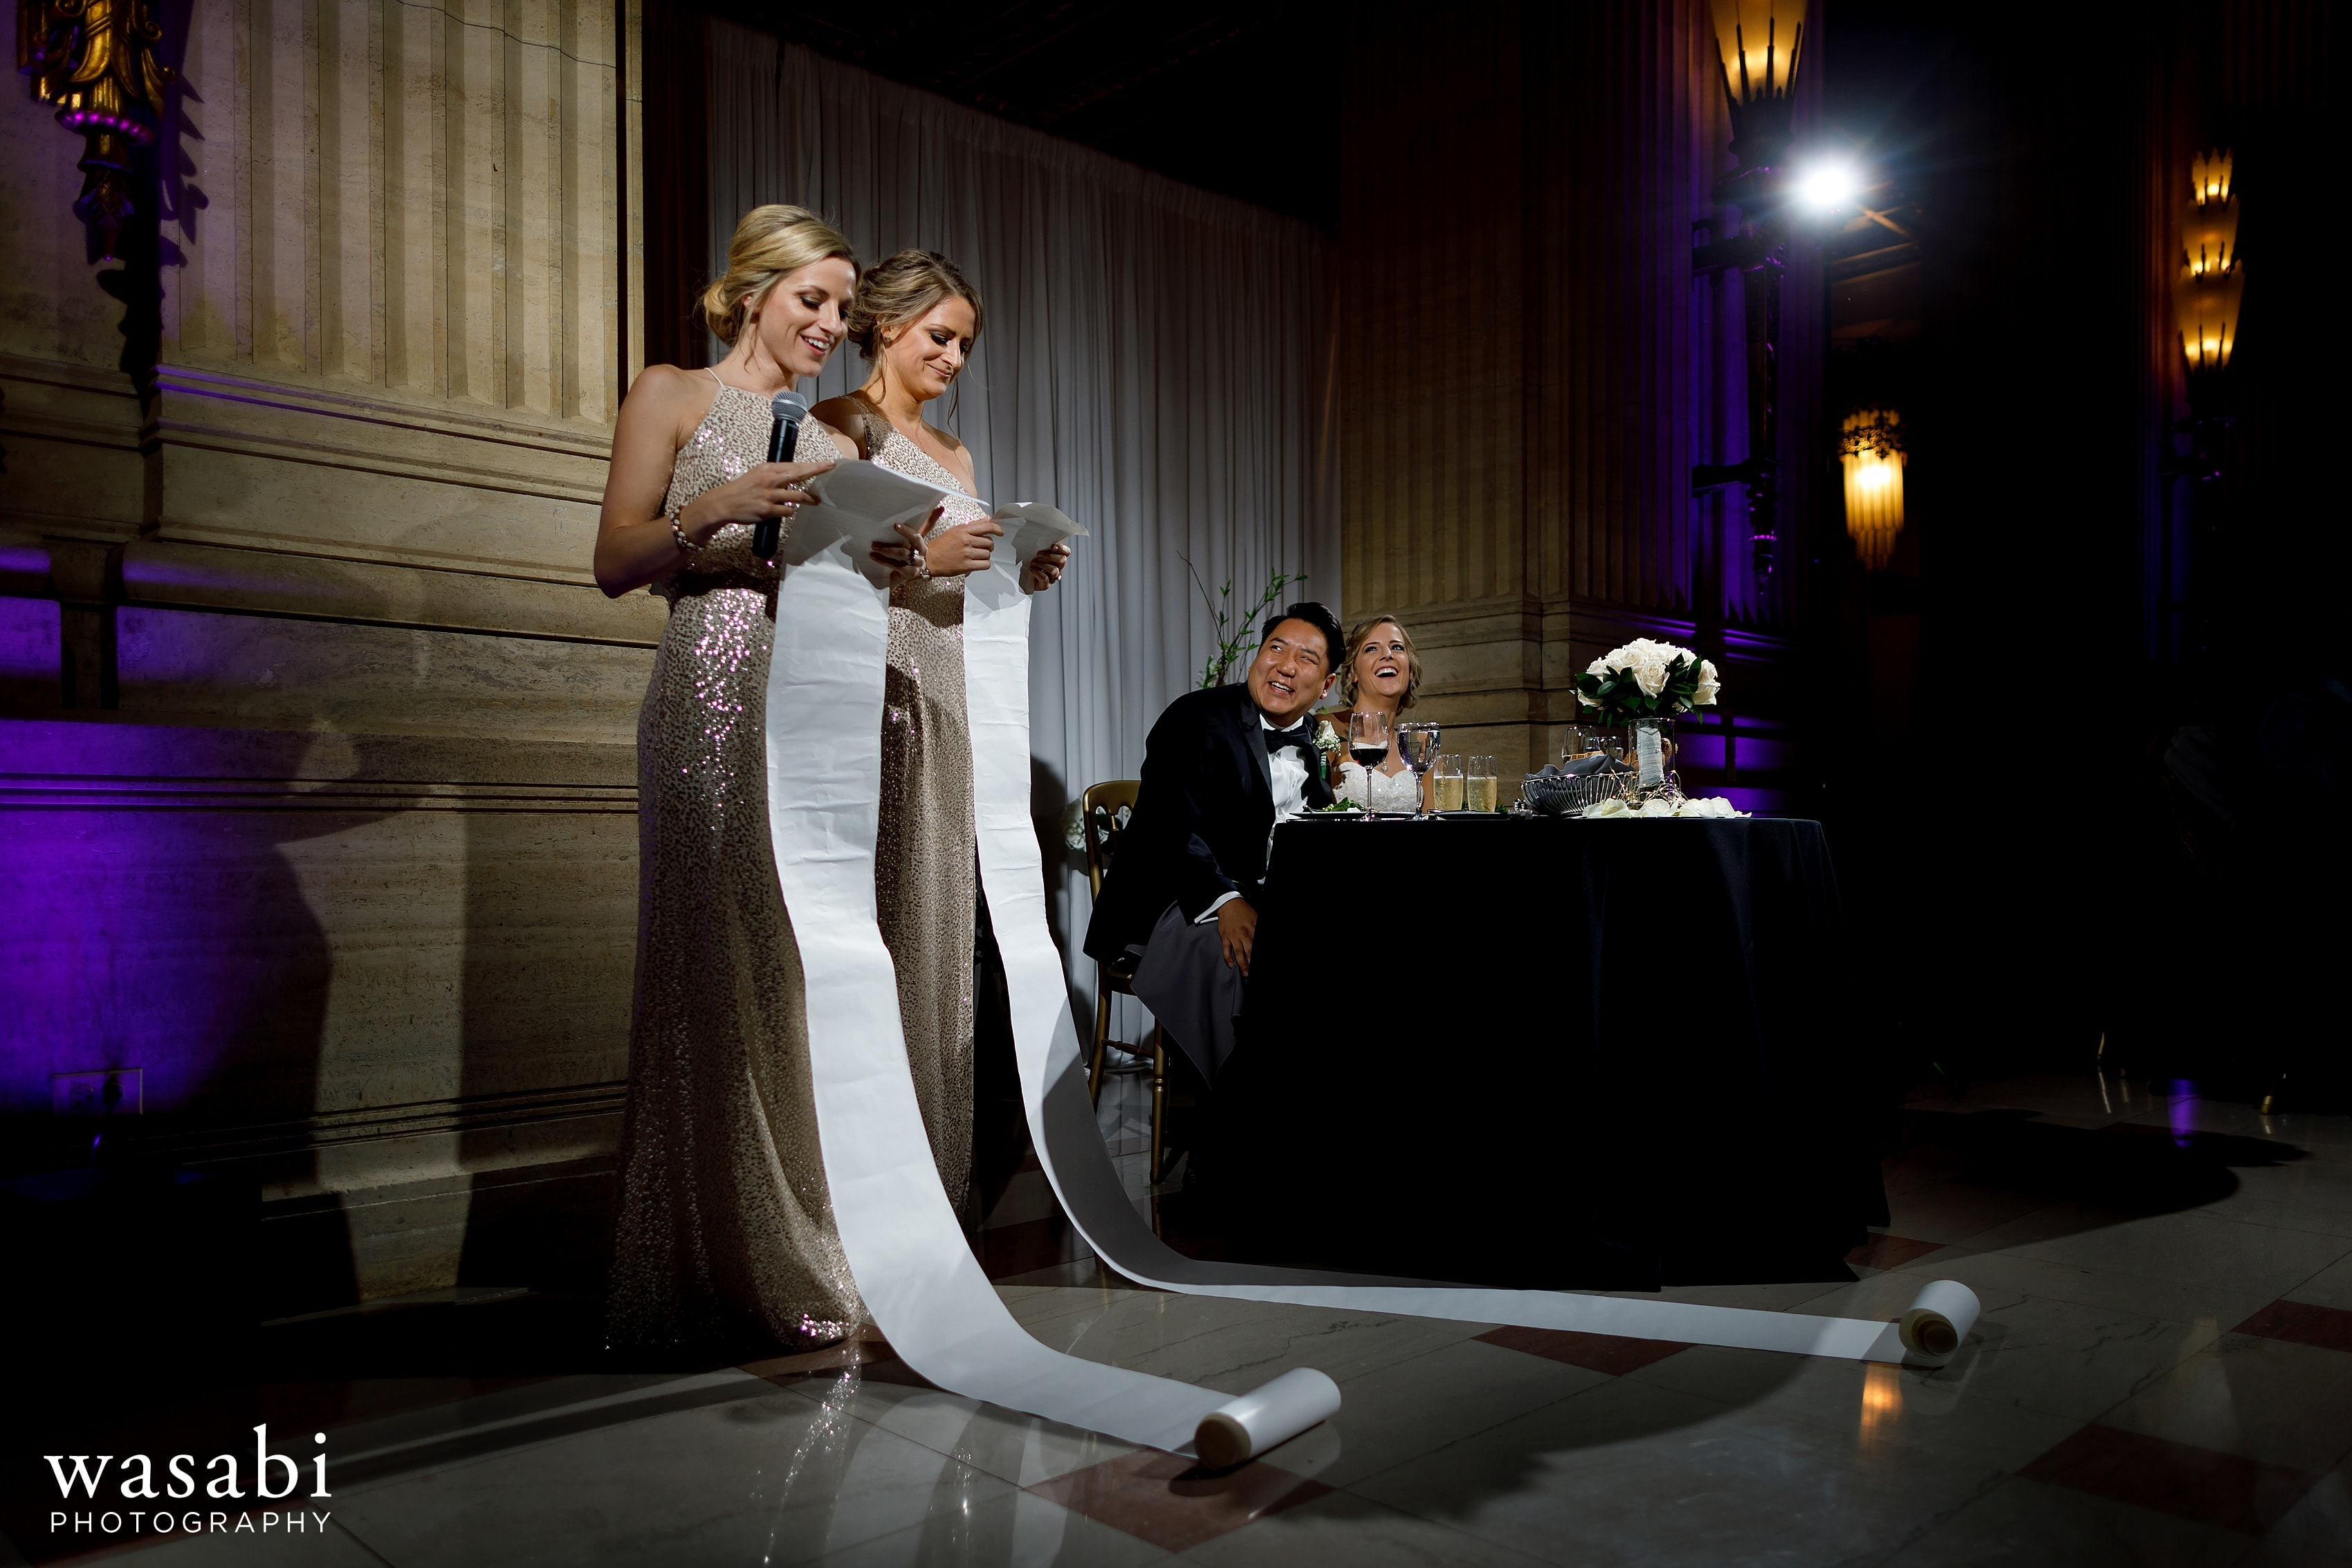 Bridesmaid sisters read long scrolls as joke during toasts at Civic Opera House wedding reception in Chicago